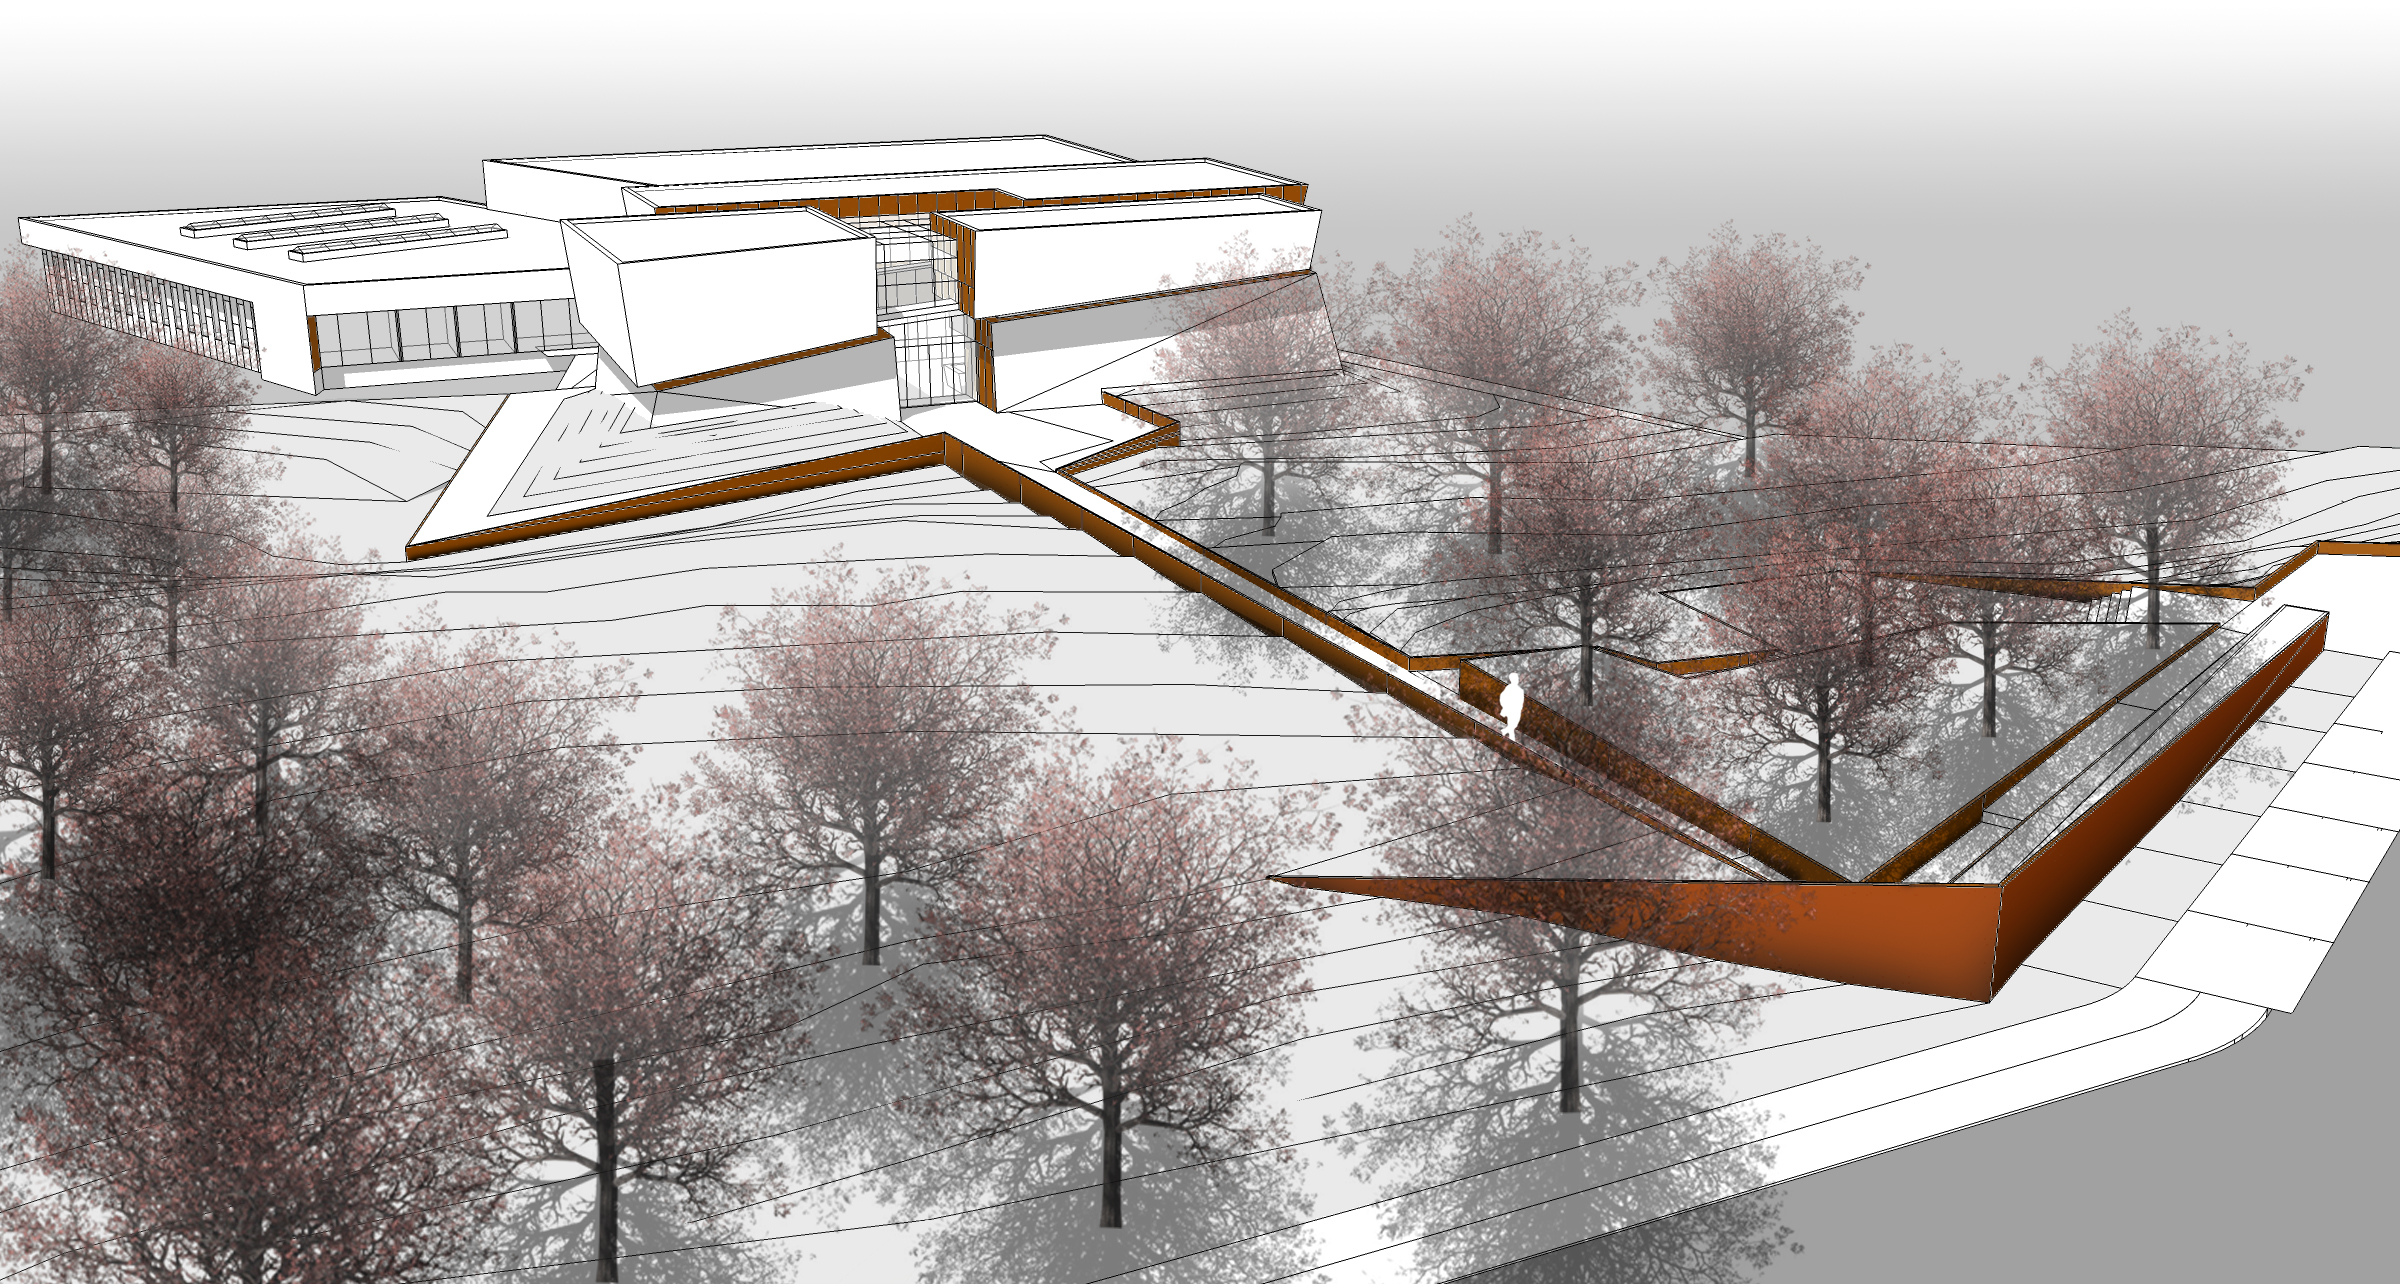 National museum of health and medicine landscape architecture